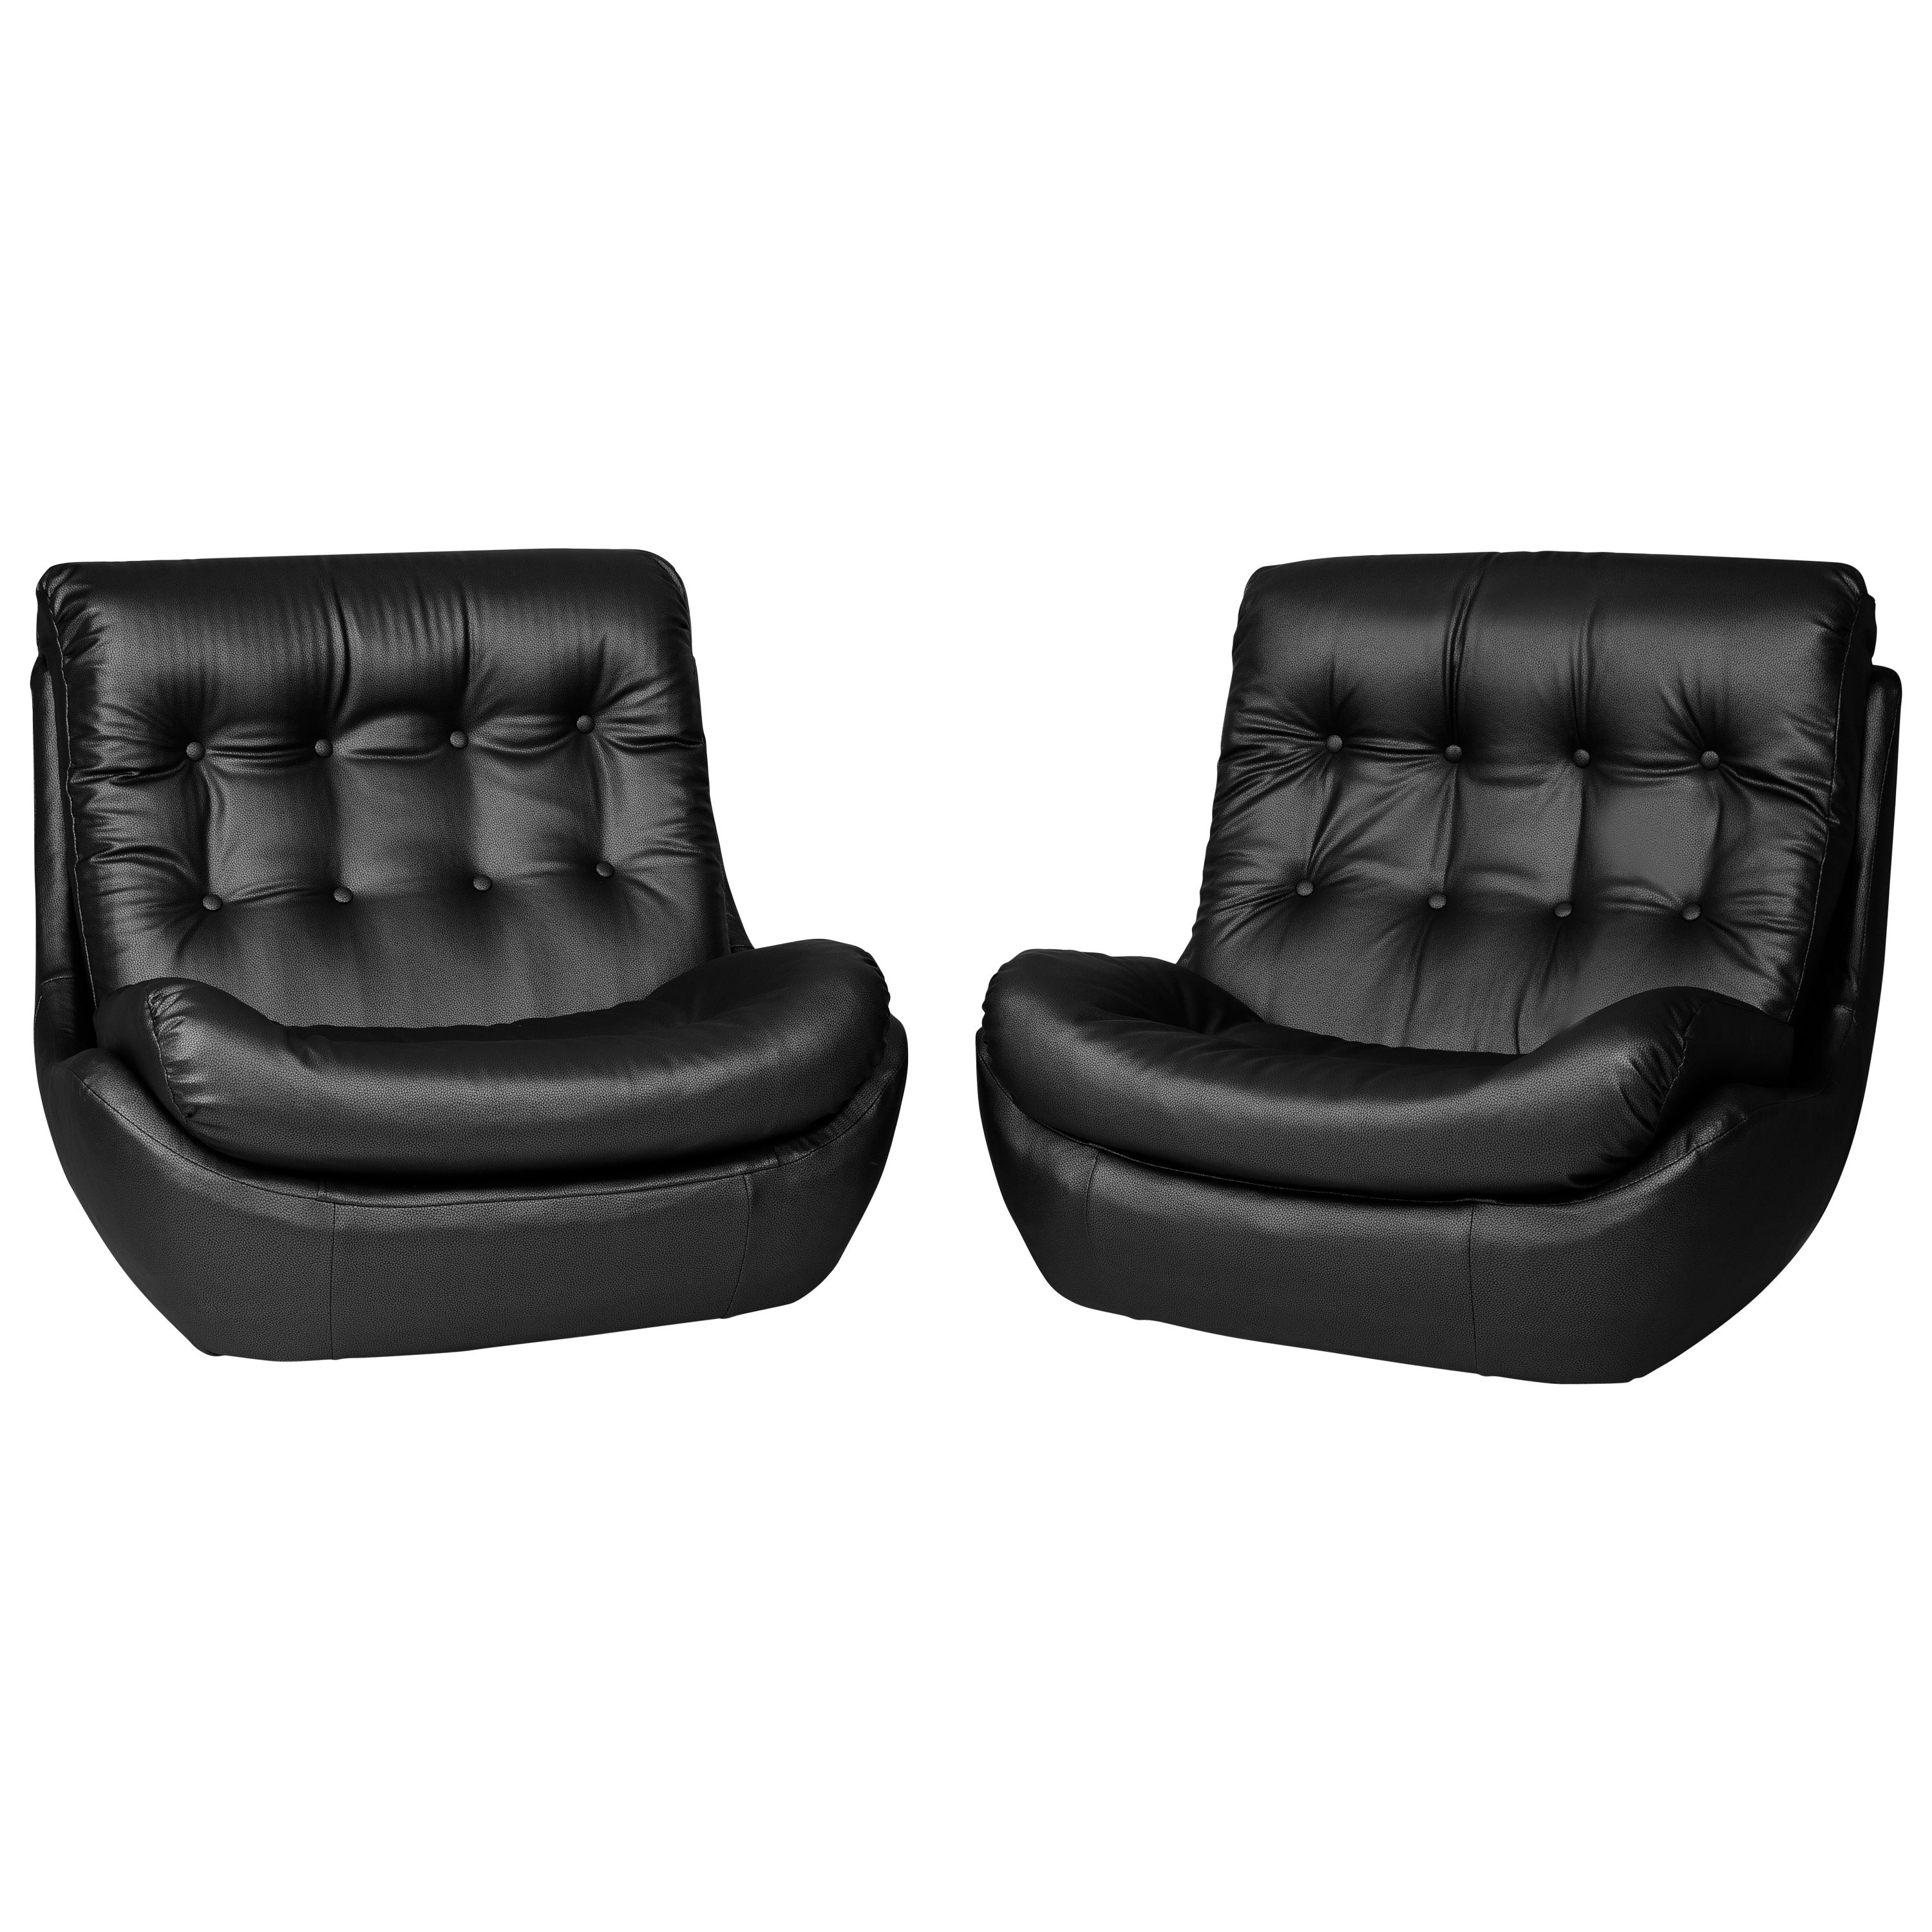 Set of Two 20th Century Vintage Black Faux Leather Atlantis Armchairs, 1960s